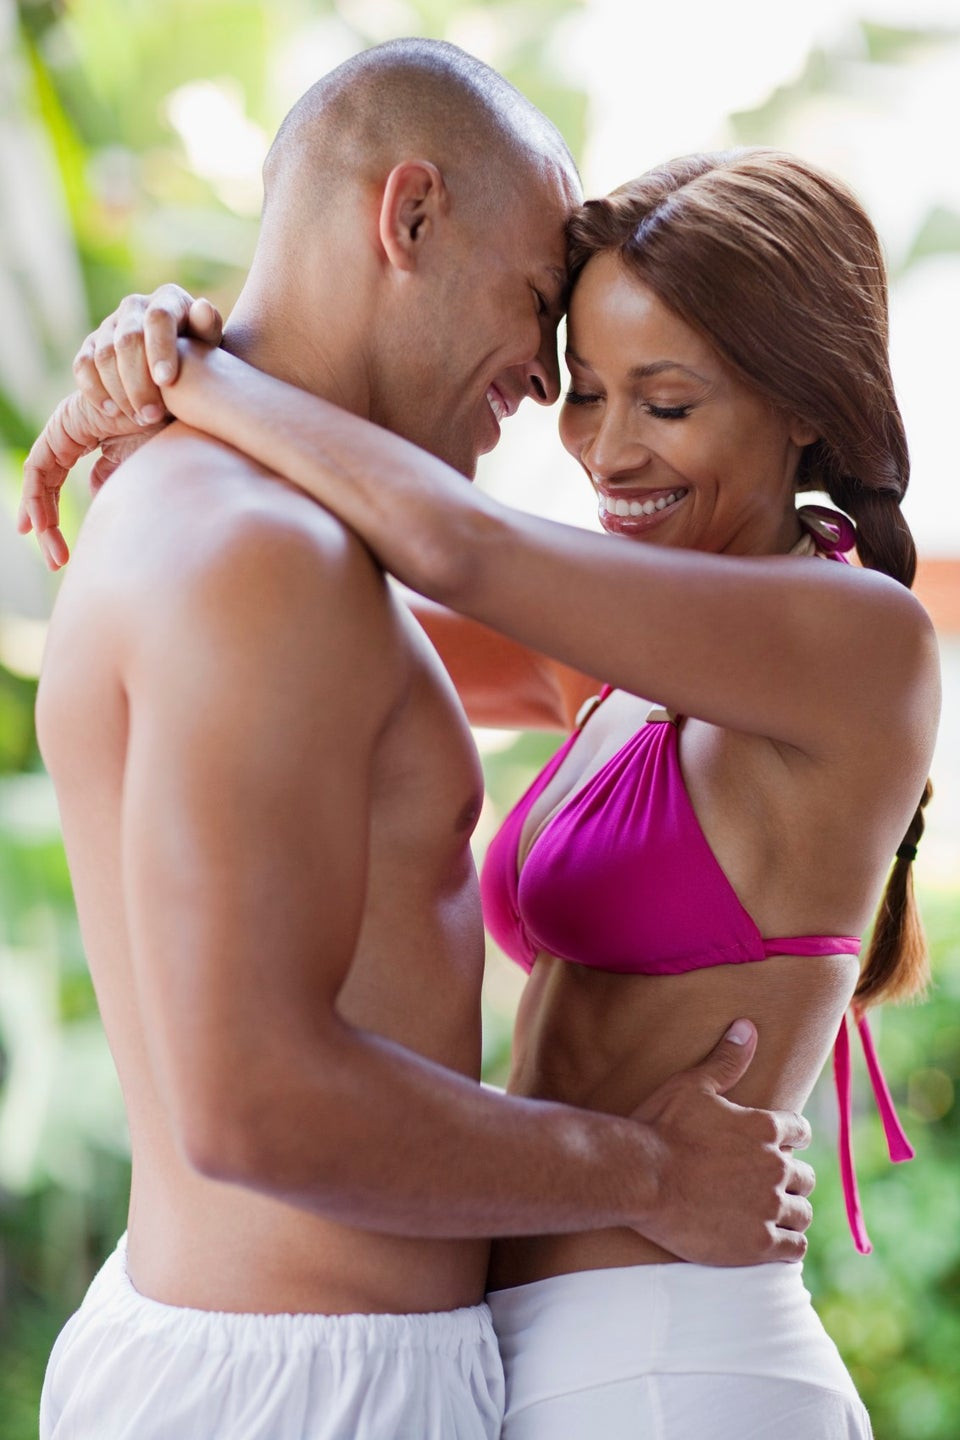 An Open Letter to Serial Monogamists